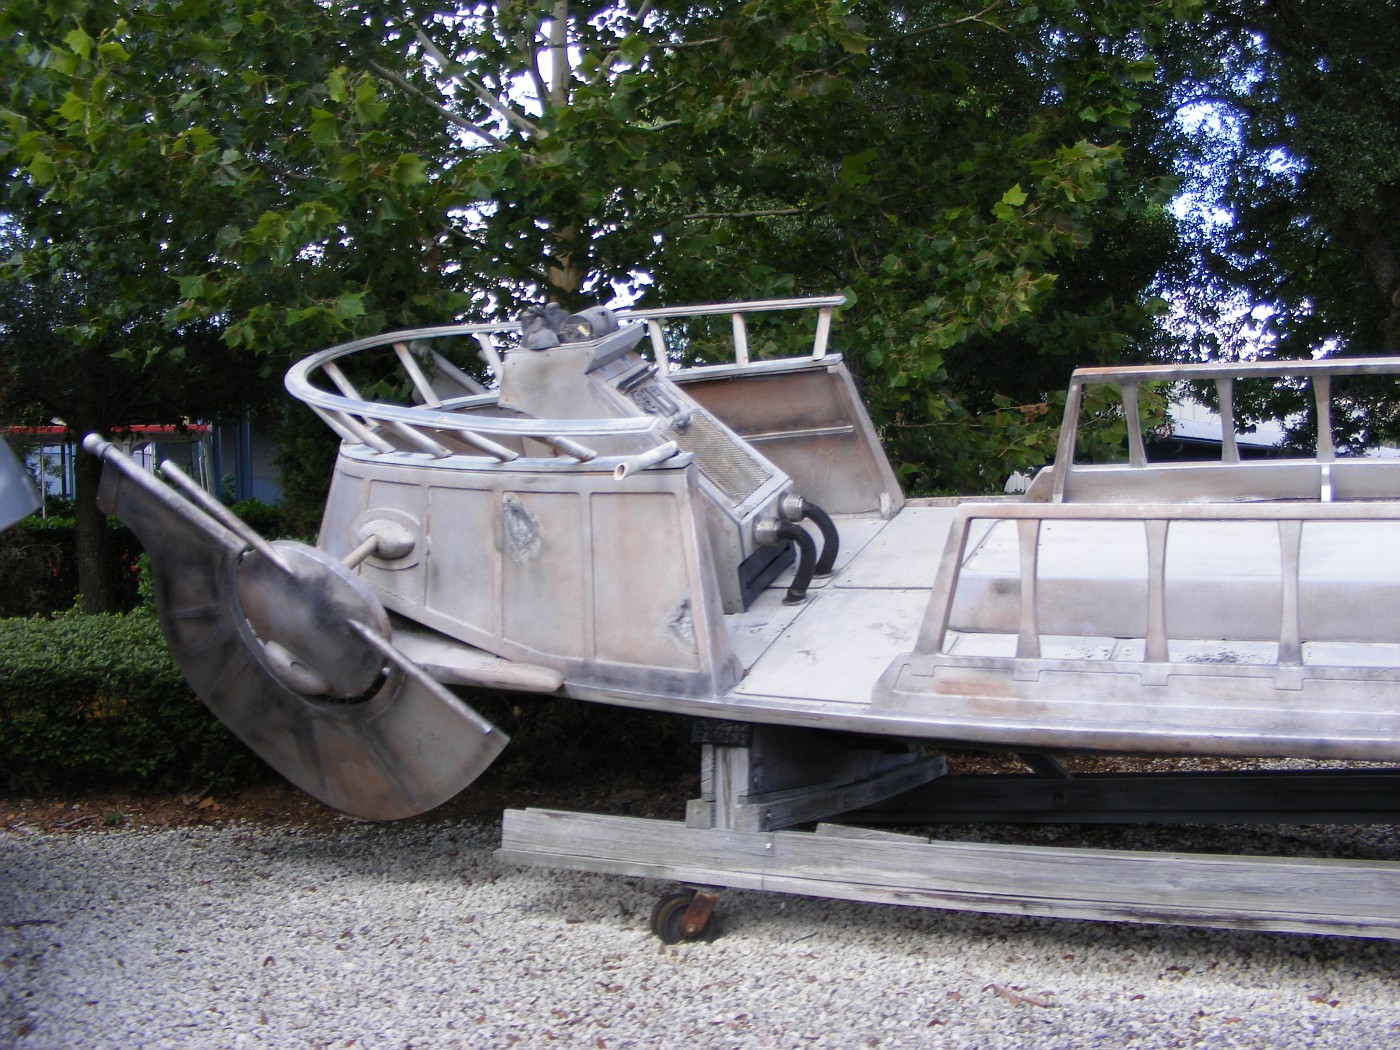 Yes, its Jabba's Skiff!